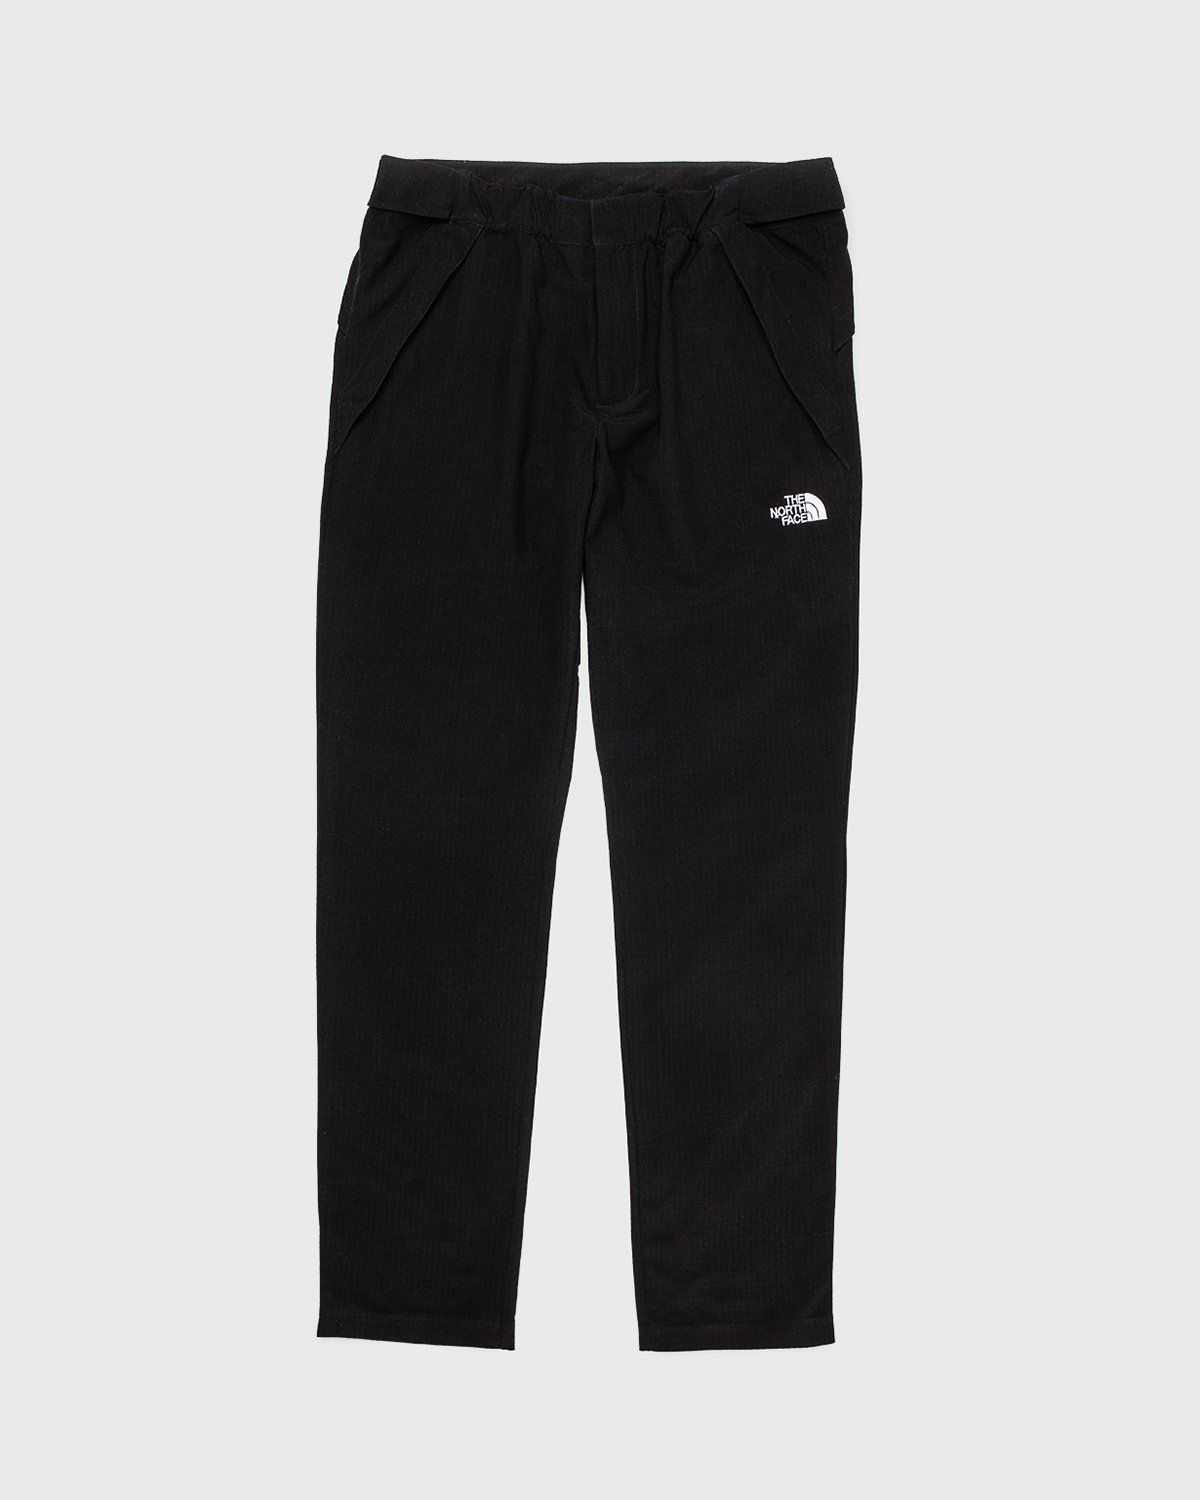 The North Face Black Series — Ripstop Trousers Black - Image 1